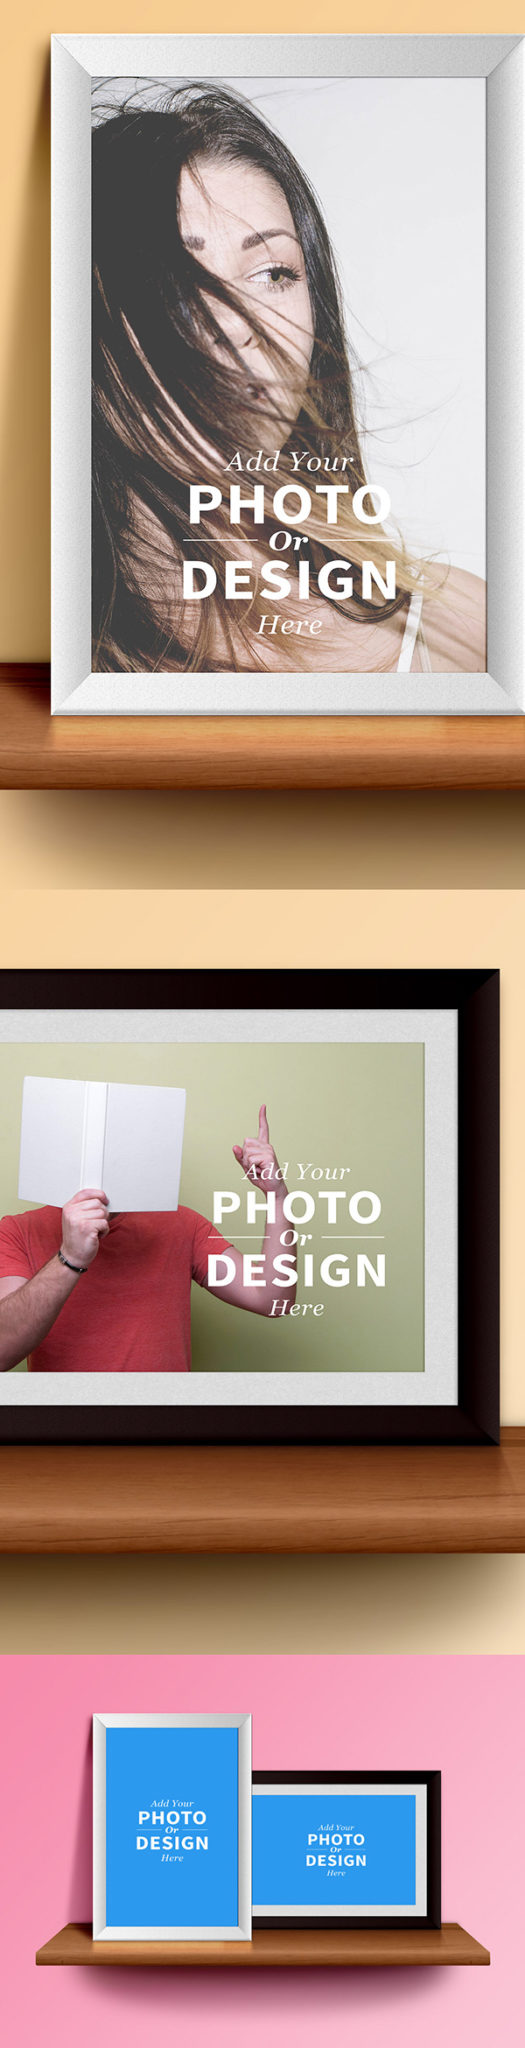 PSD Mockup photo frames